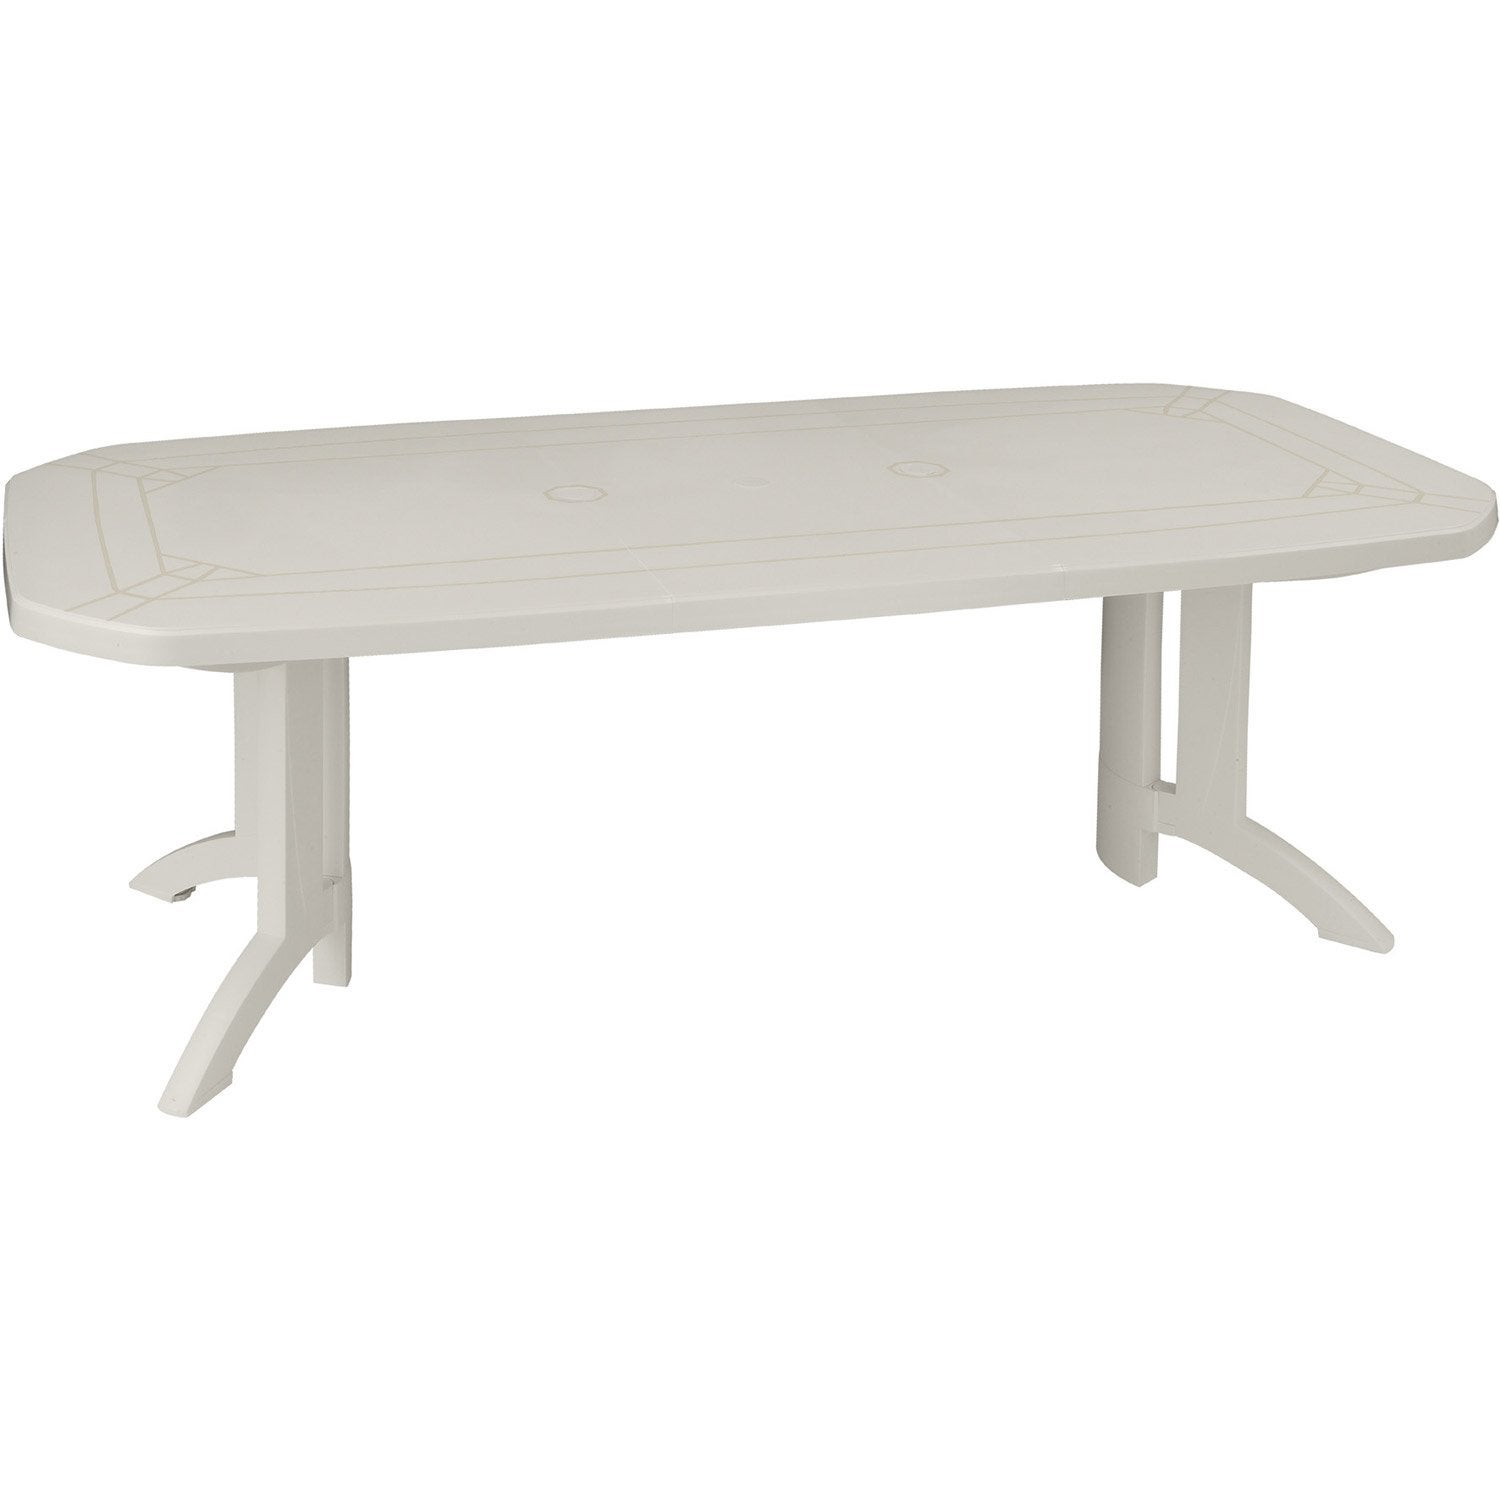 Table de jardin GROSFILLEX Véga rectangulaire blanc 10 personnes ...